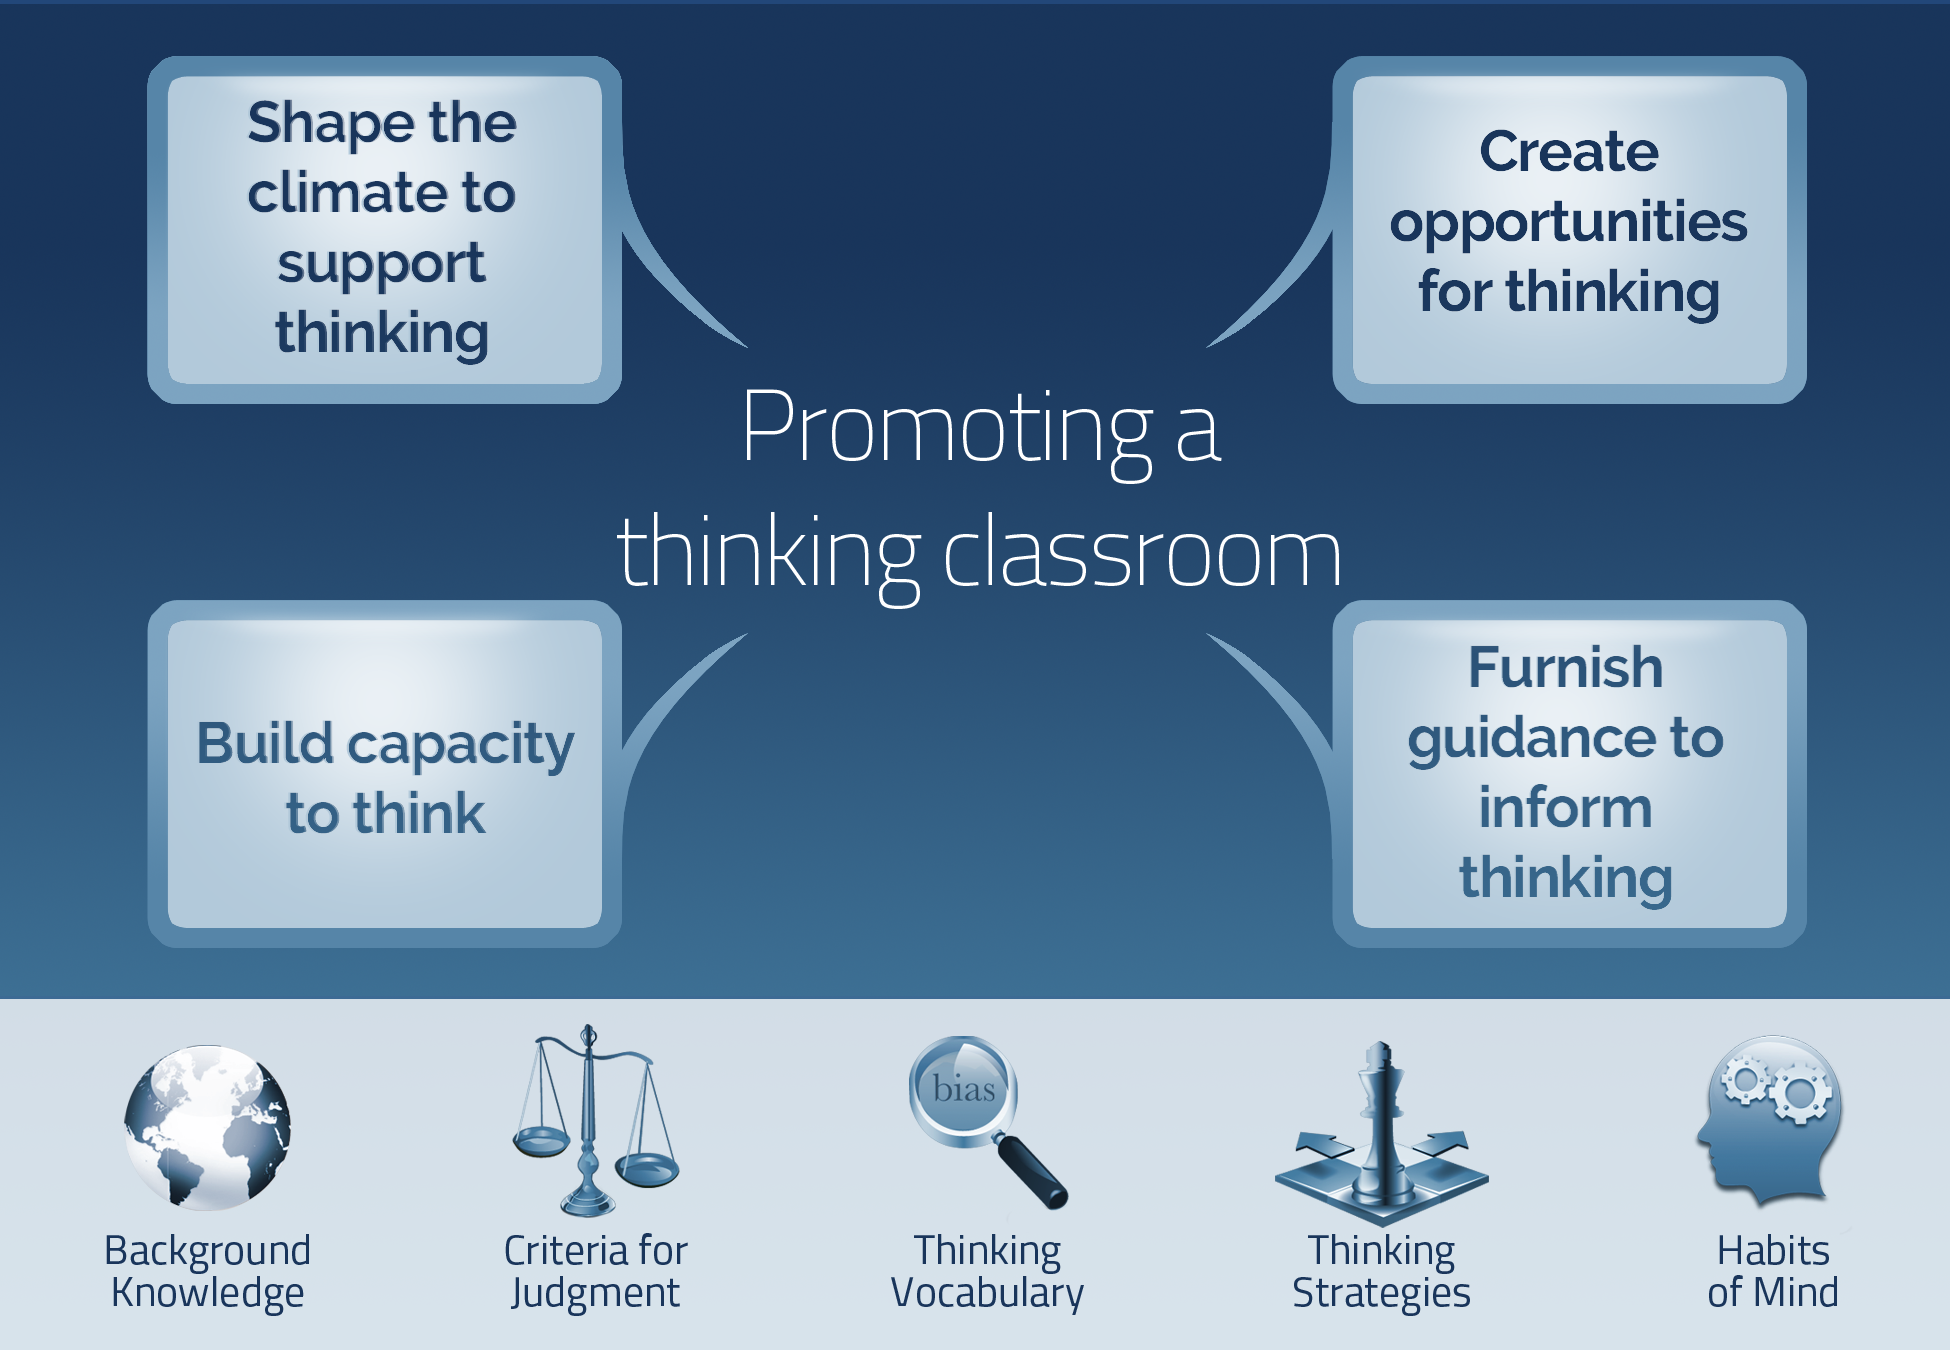 Promoting a thinking classroom